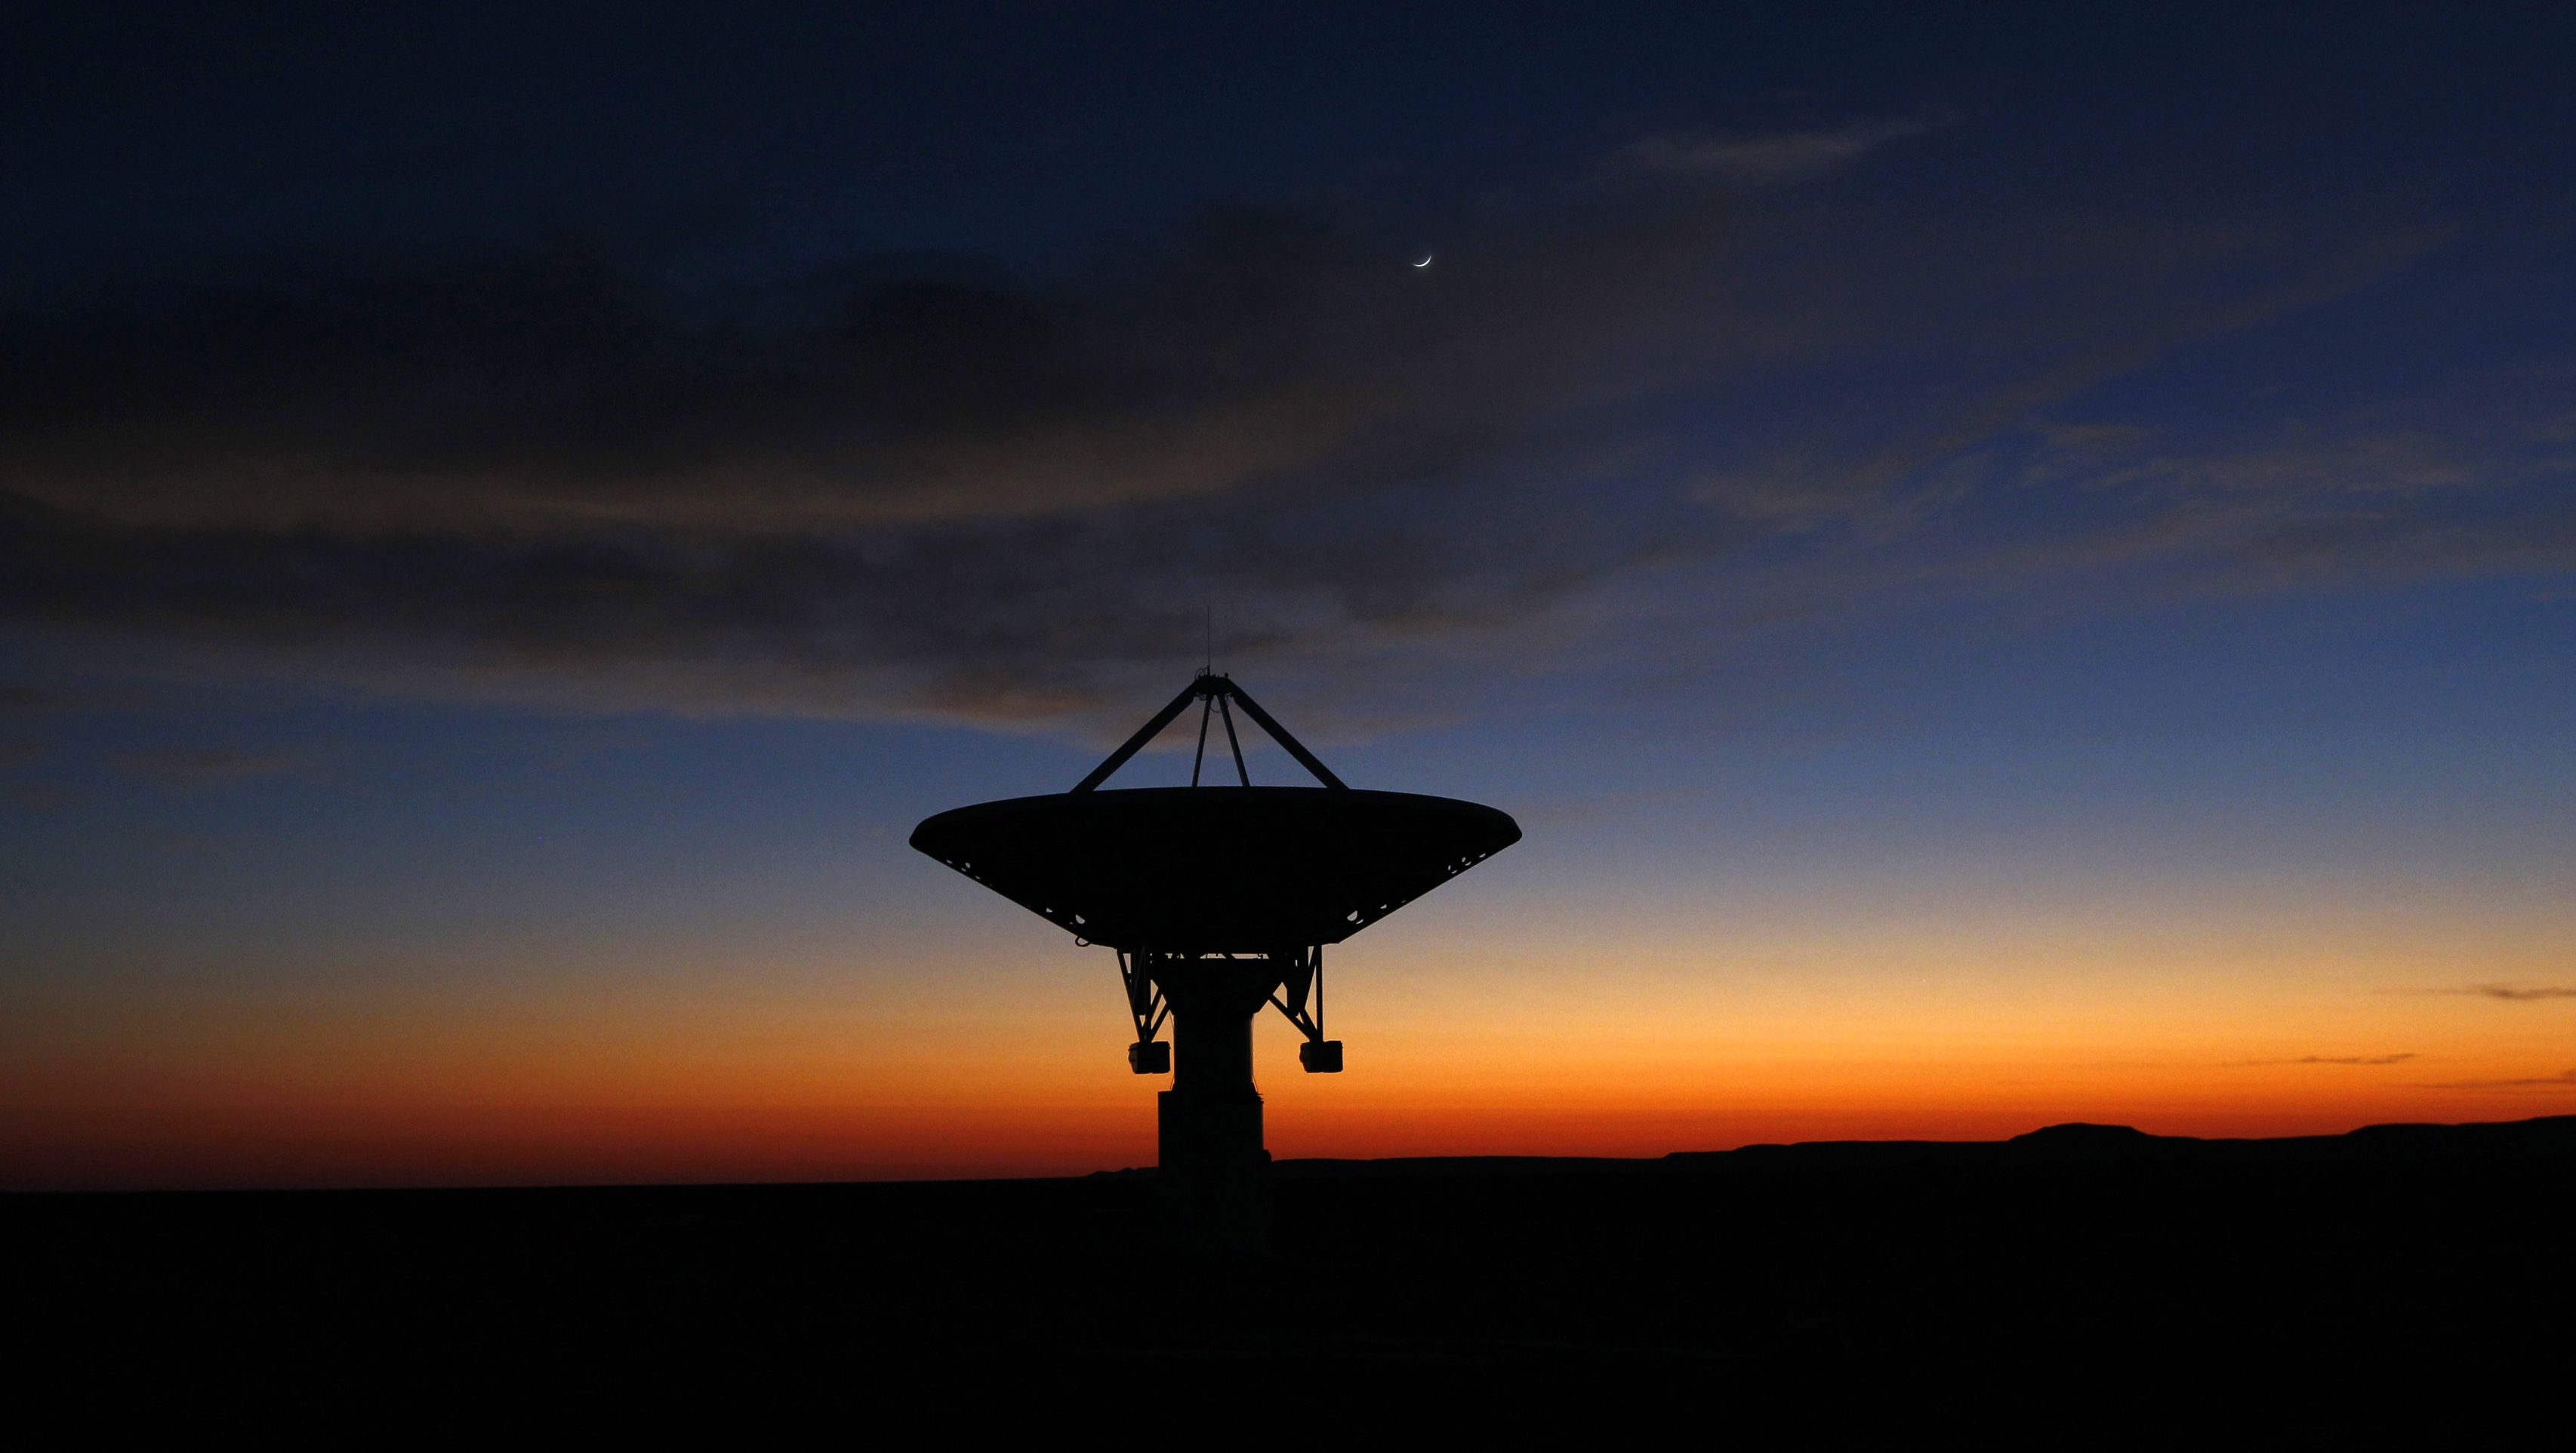 Dawn breaks over a radio telescope dish of the KAT-7 Array pointing skyward at the proposed South African site for the Square Kilometre Array (SKA) telescope near Carnavon in the country's remote Northern Cape province in this picture taken May 18, 2012. South Africa is bidding against Australia to host the SKA, which will be the world's largest radio telescope when completed. Picture taken May 18, 2012.